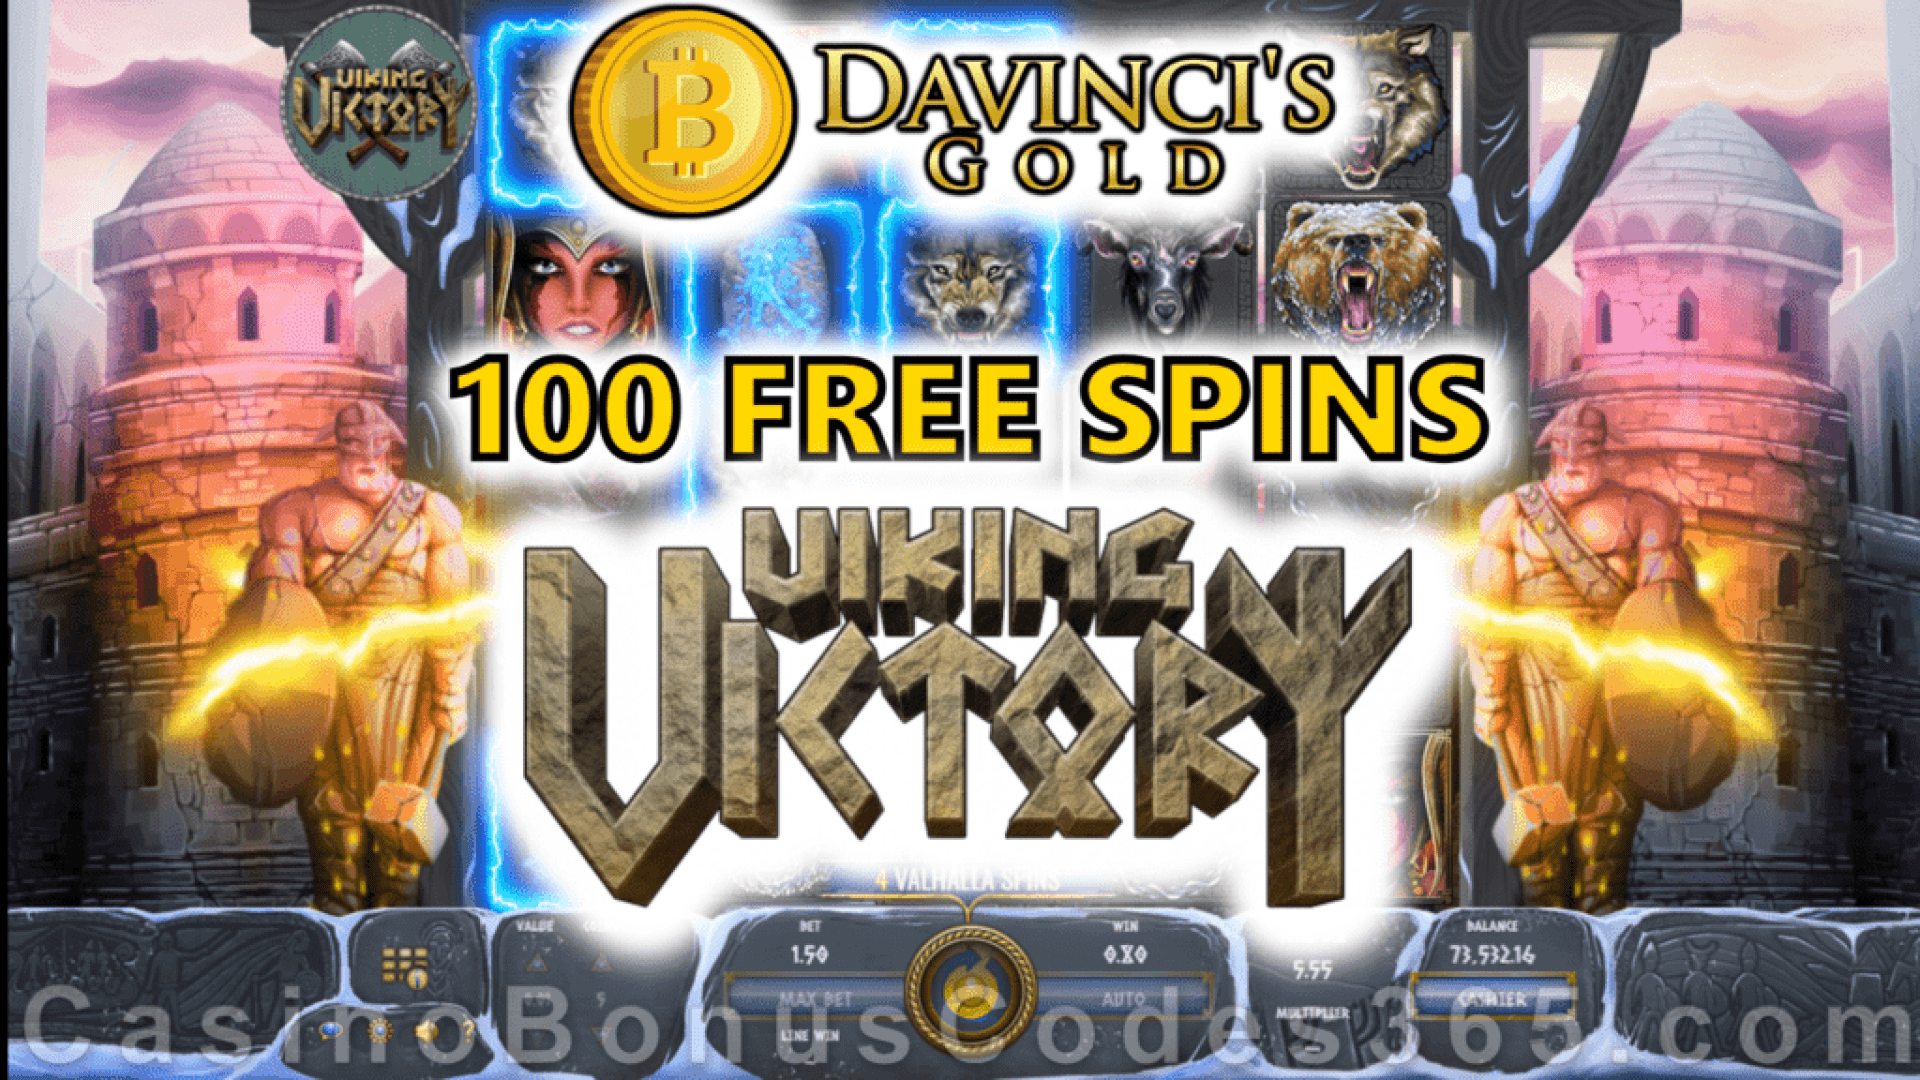 Da Vinci's Gold 100 FREE Spins on Viking Viktory New Game Special Deal Offer